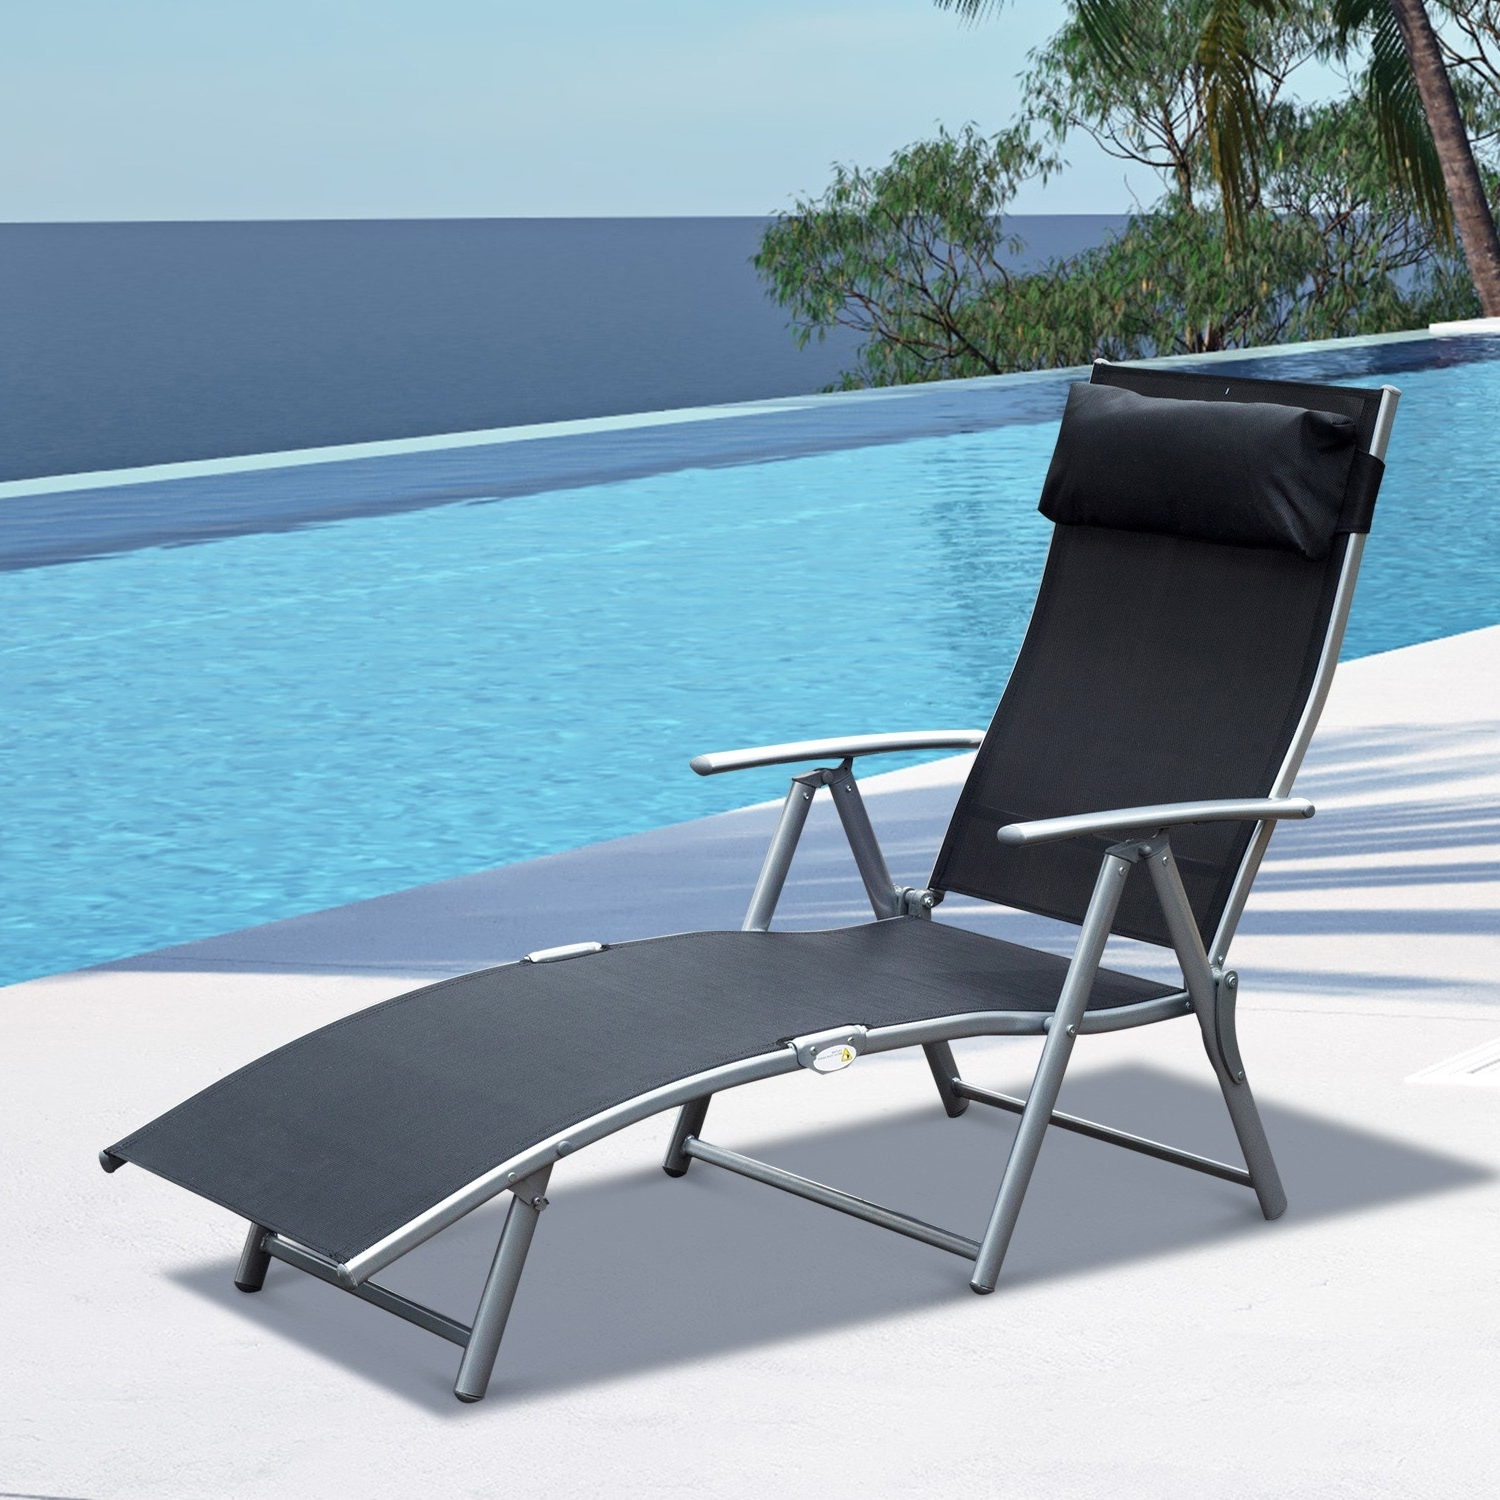 Heavy Duty Outdoor Chaise Lounge Chairs With Popular Lounge Chair : Chairs Patio Chairs For Large People Lounge Chairs (View 6 of 15)